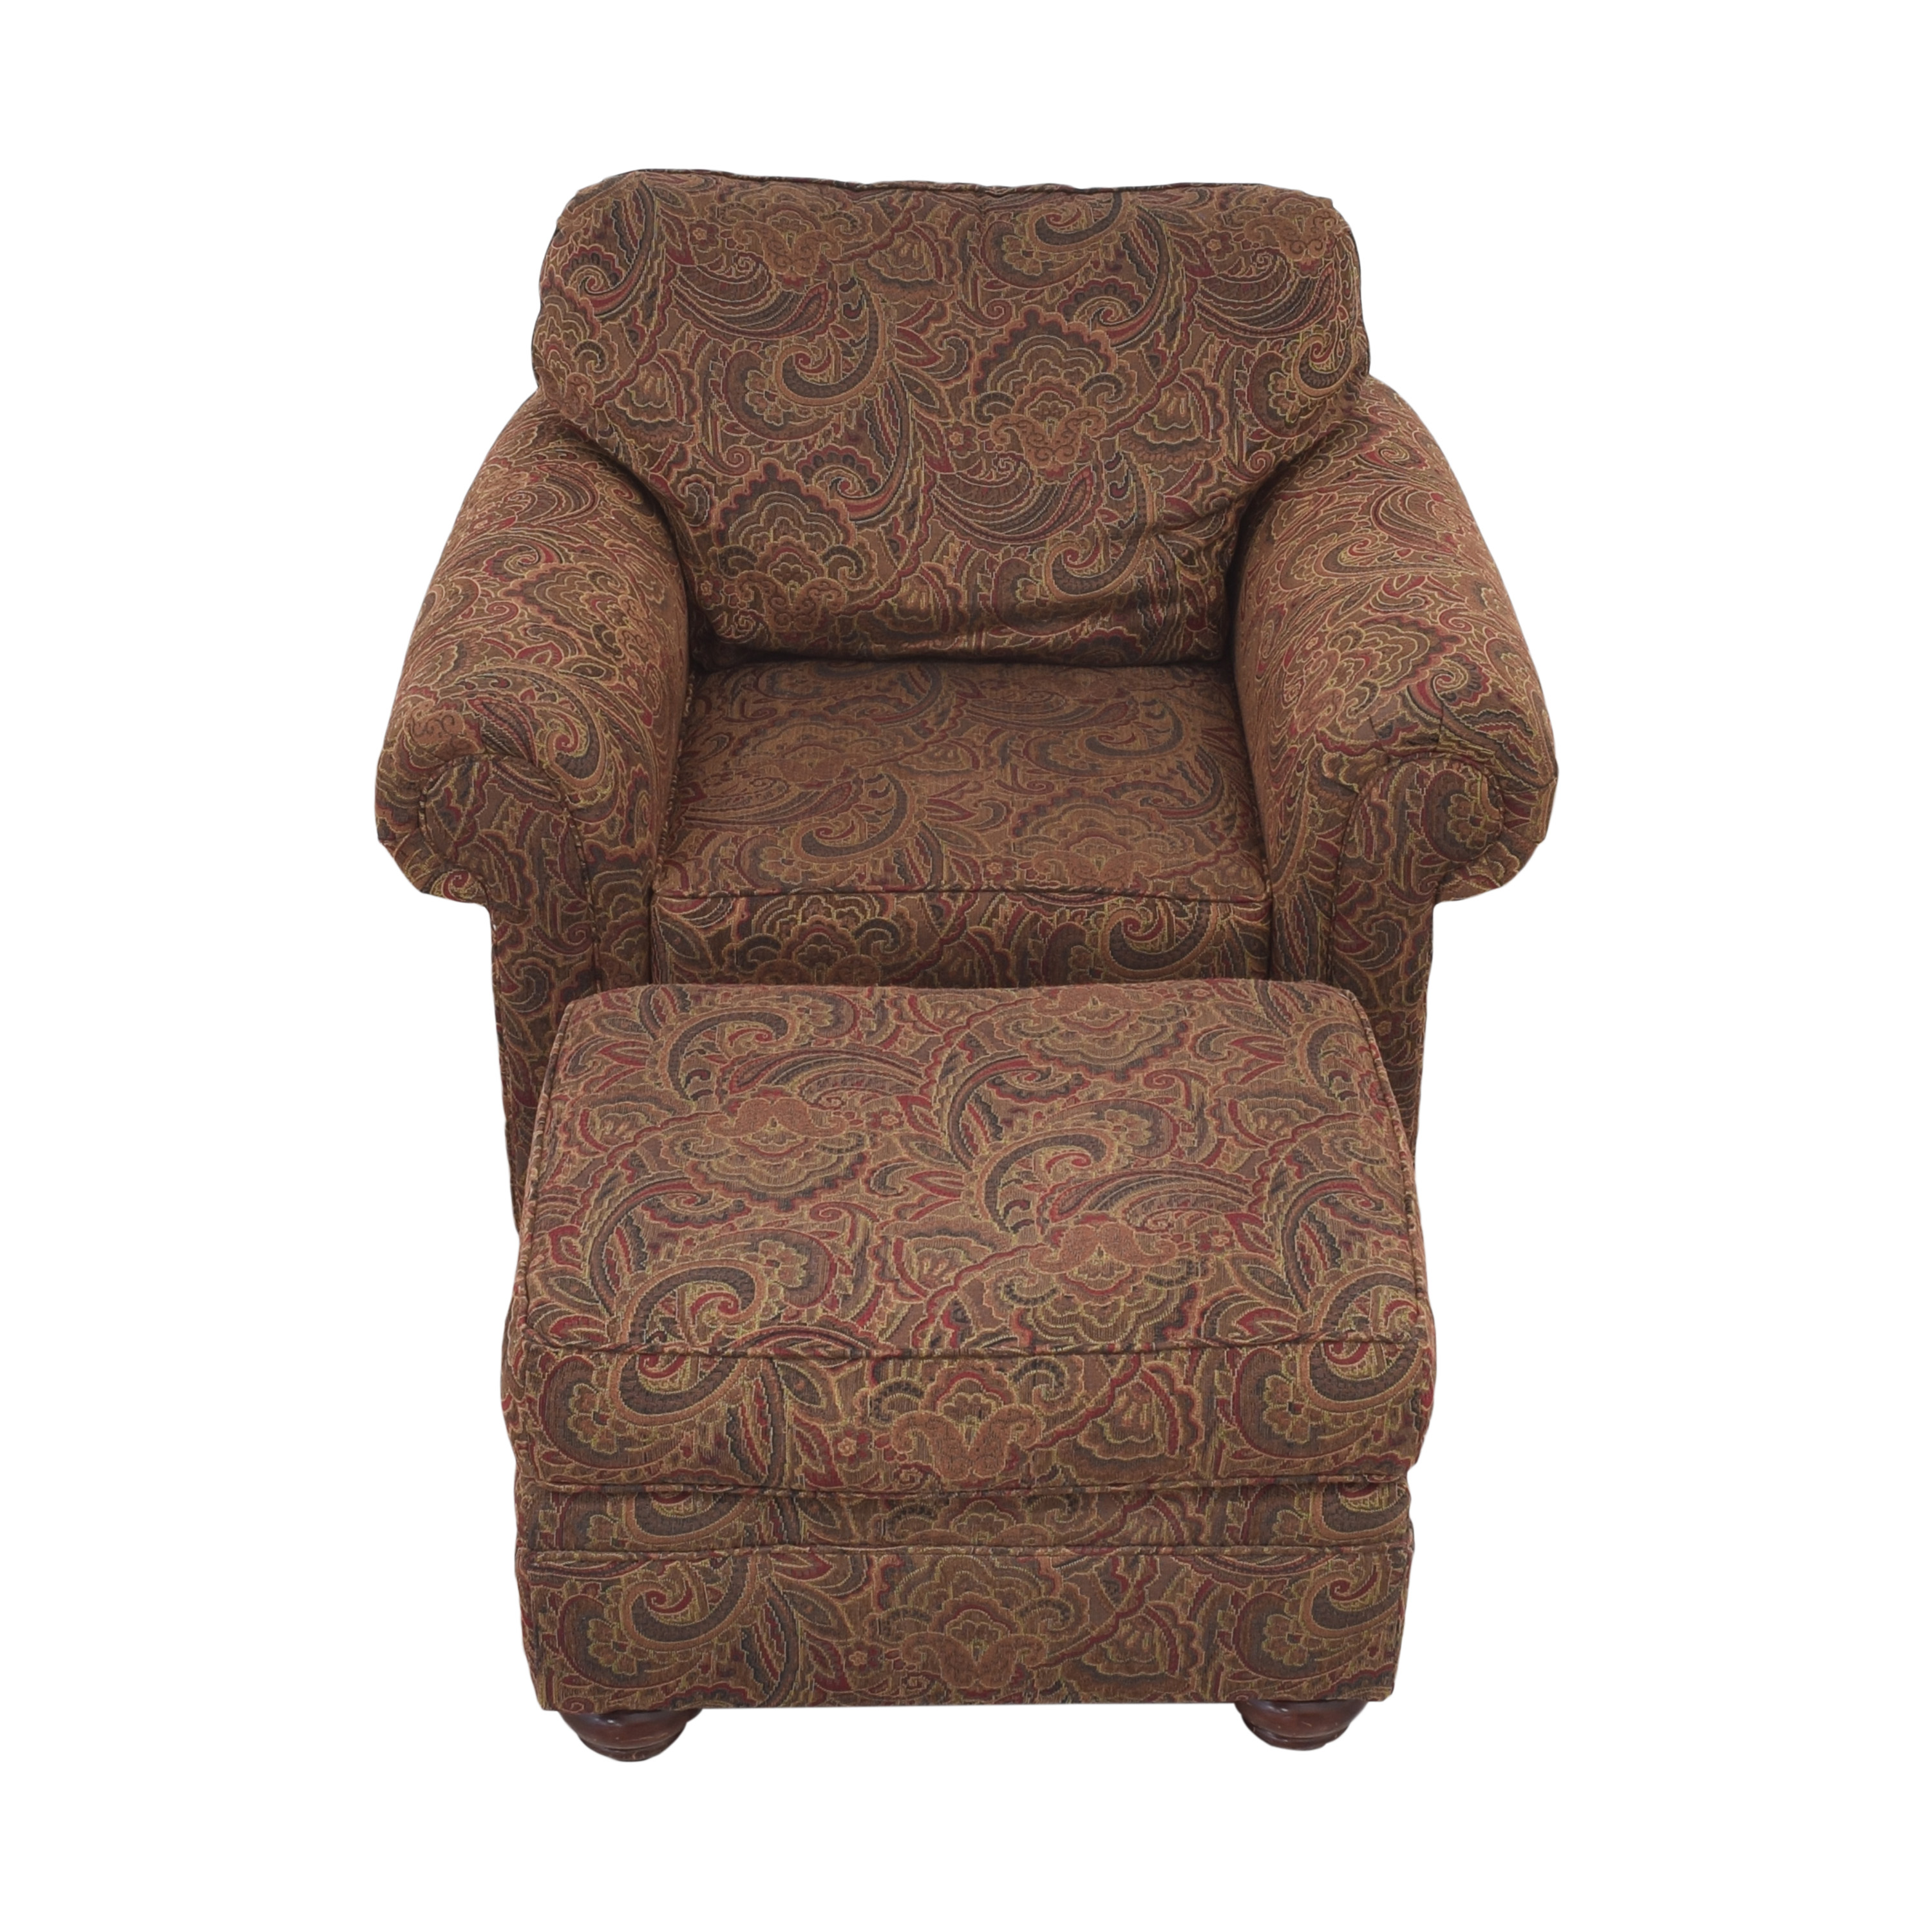 buy Broyhill Furniture Broyhill Furniture Roll Arm Accent Chair and Ottoman online